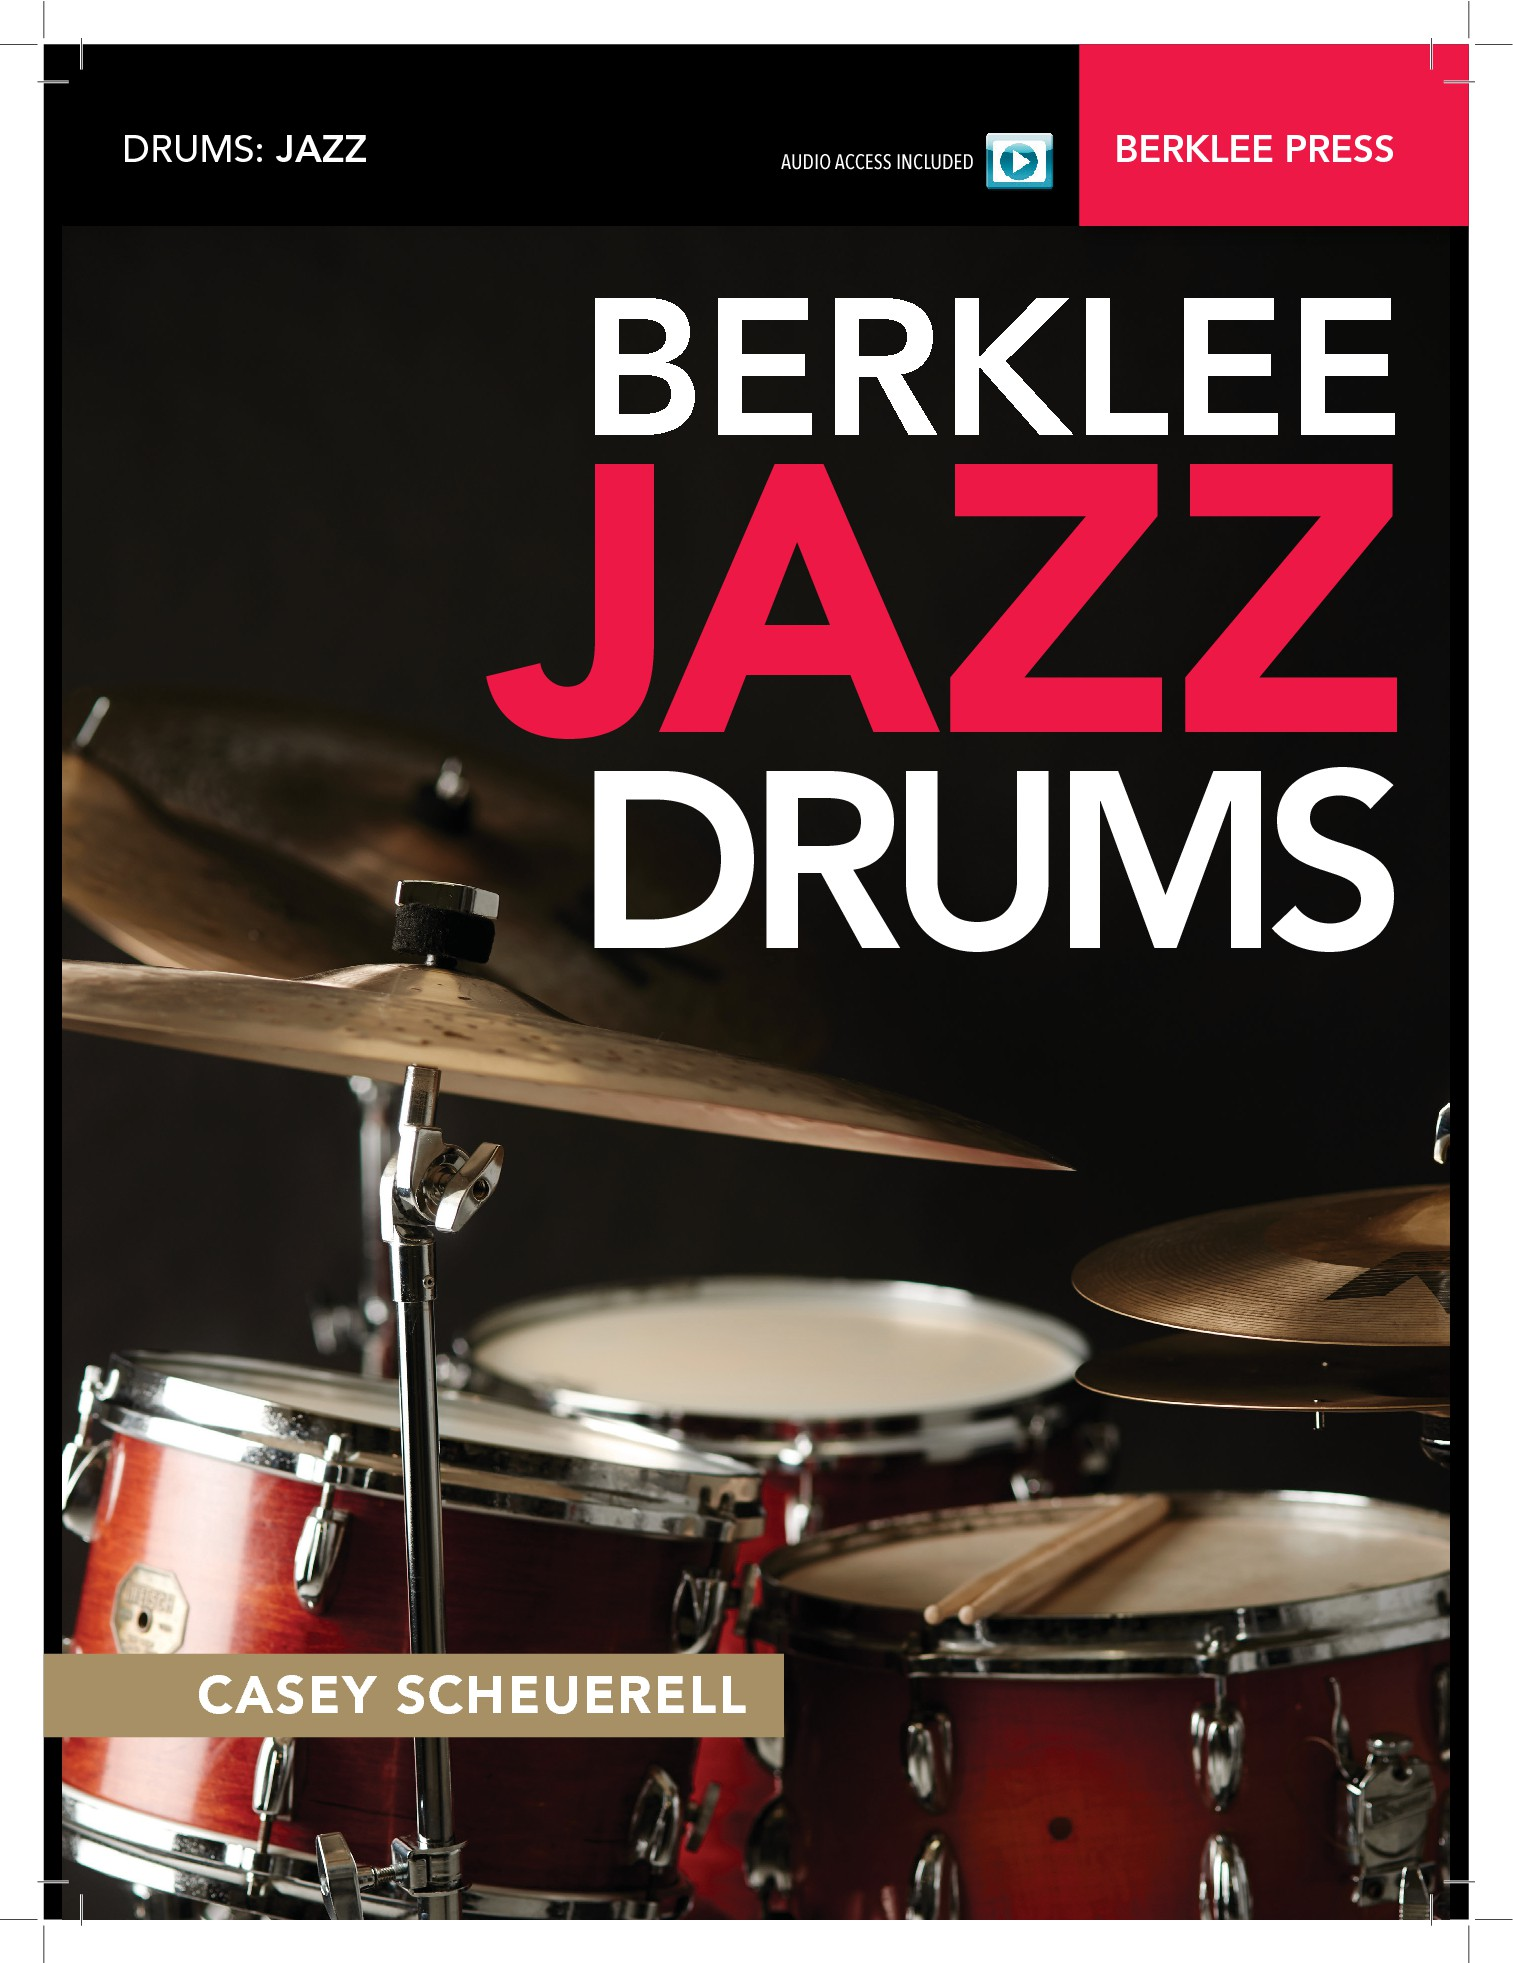 Jazz Drum Book Cover for Berklee College of Music